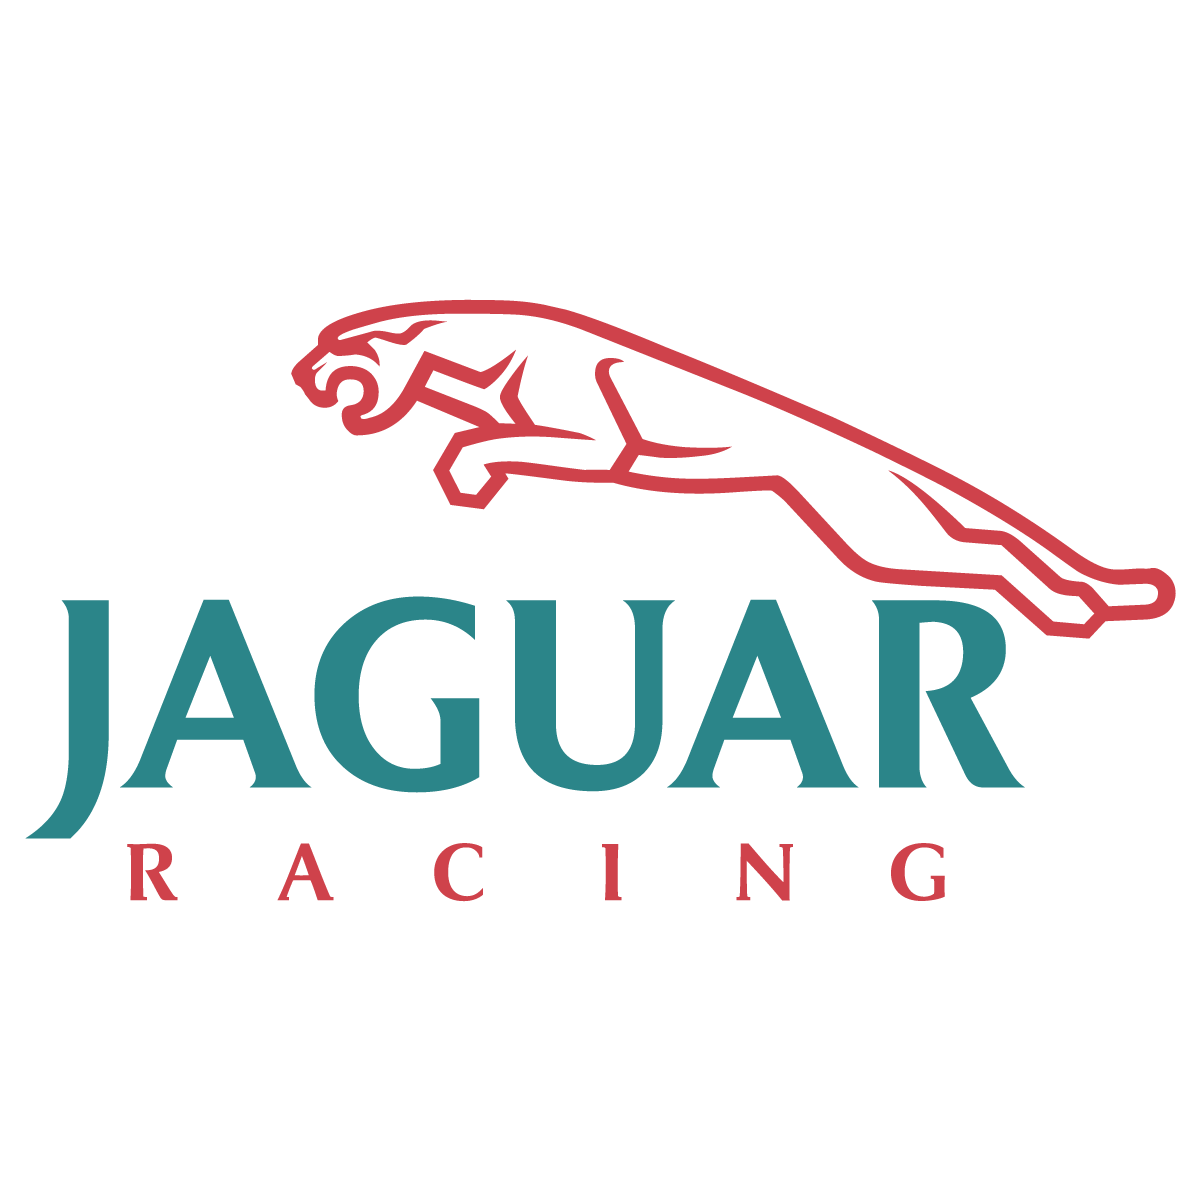 jaguar-racing-logo-transparent-vector - Ama Pro Racing Vector PNG